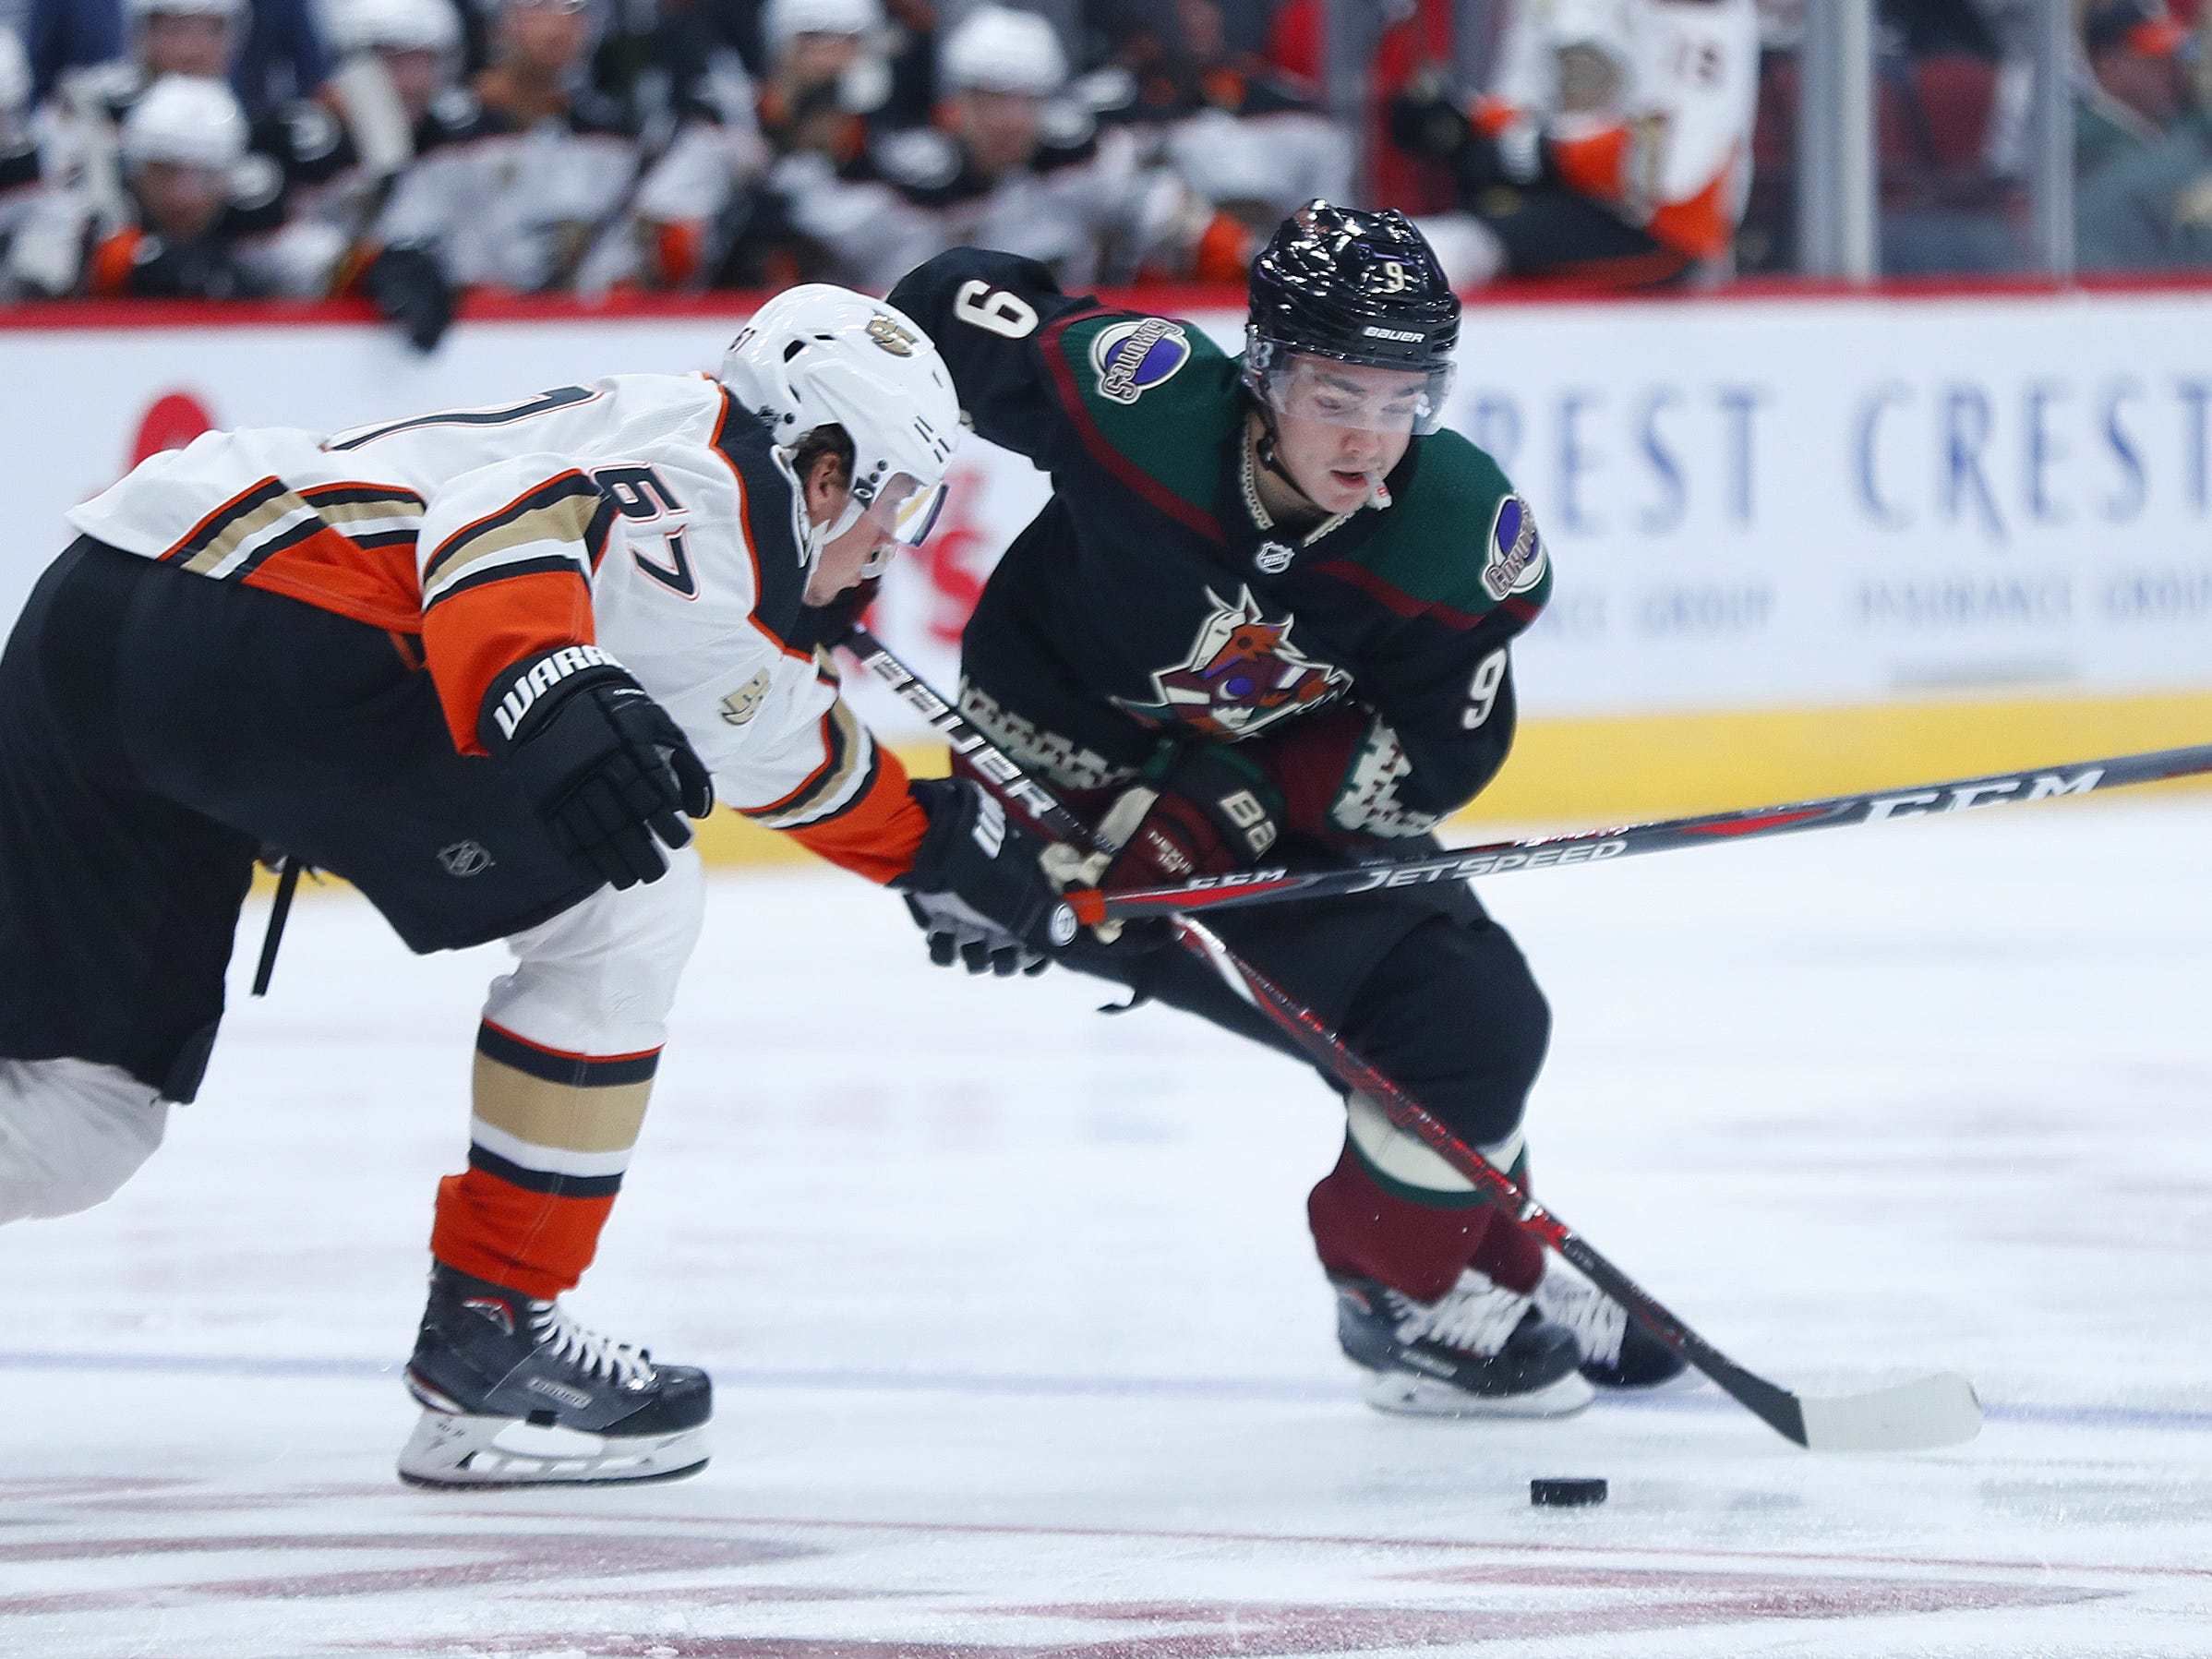 Coyotes Clayton Keller (9) skates with the puck against Ducks Rickard Rakell (67) during the second period at Gila River Arena in Glendale, Ariz. on October 6, 2018.